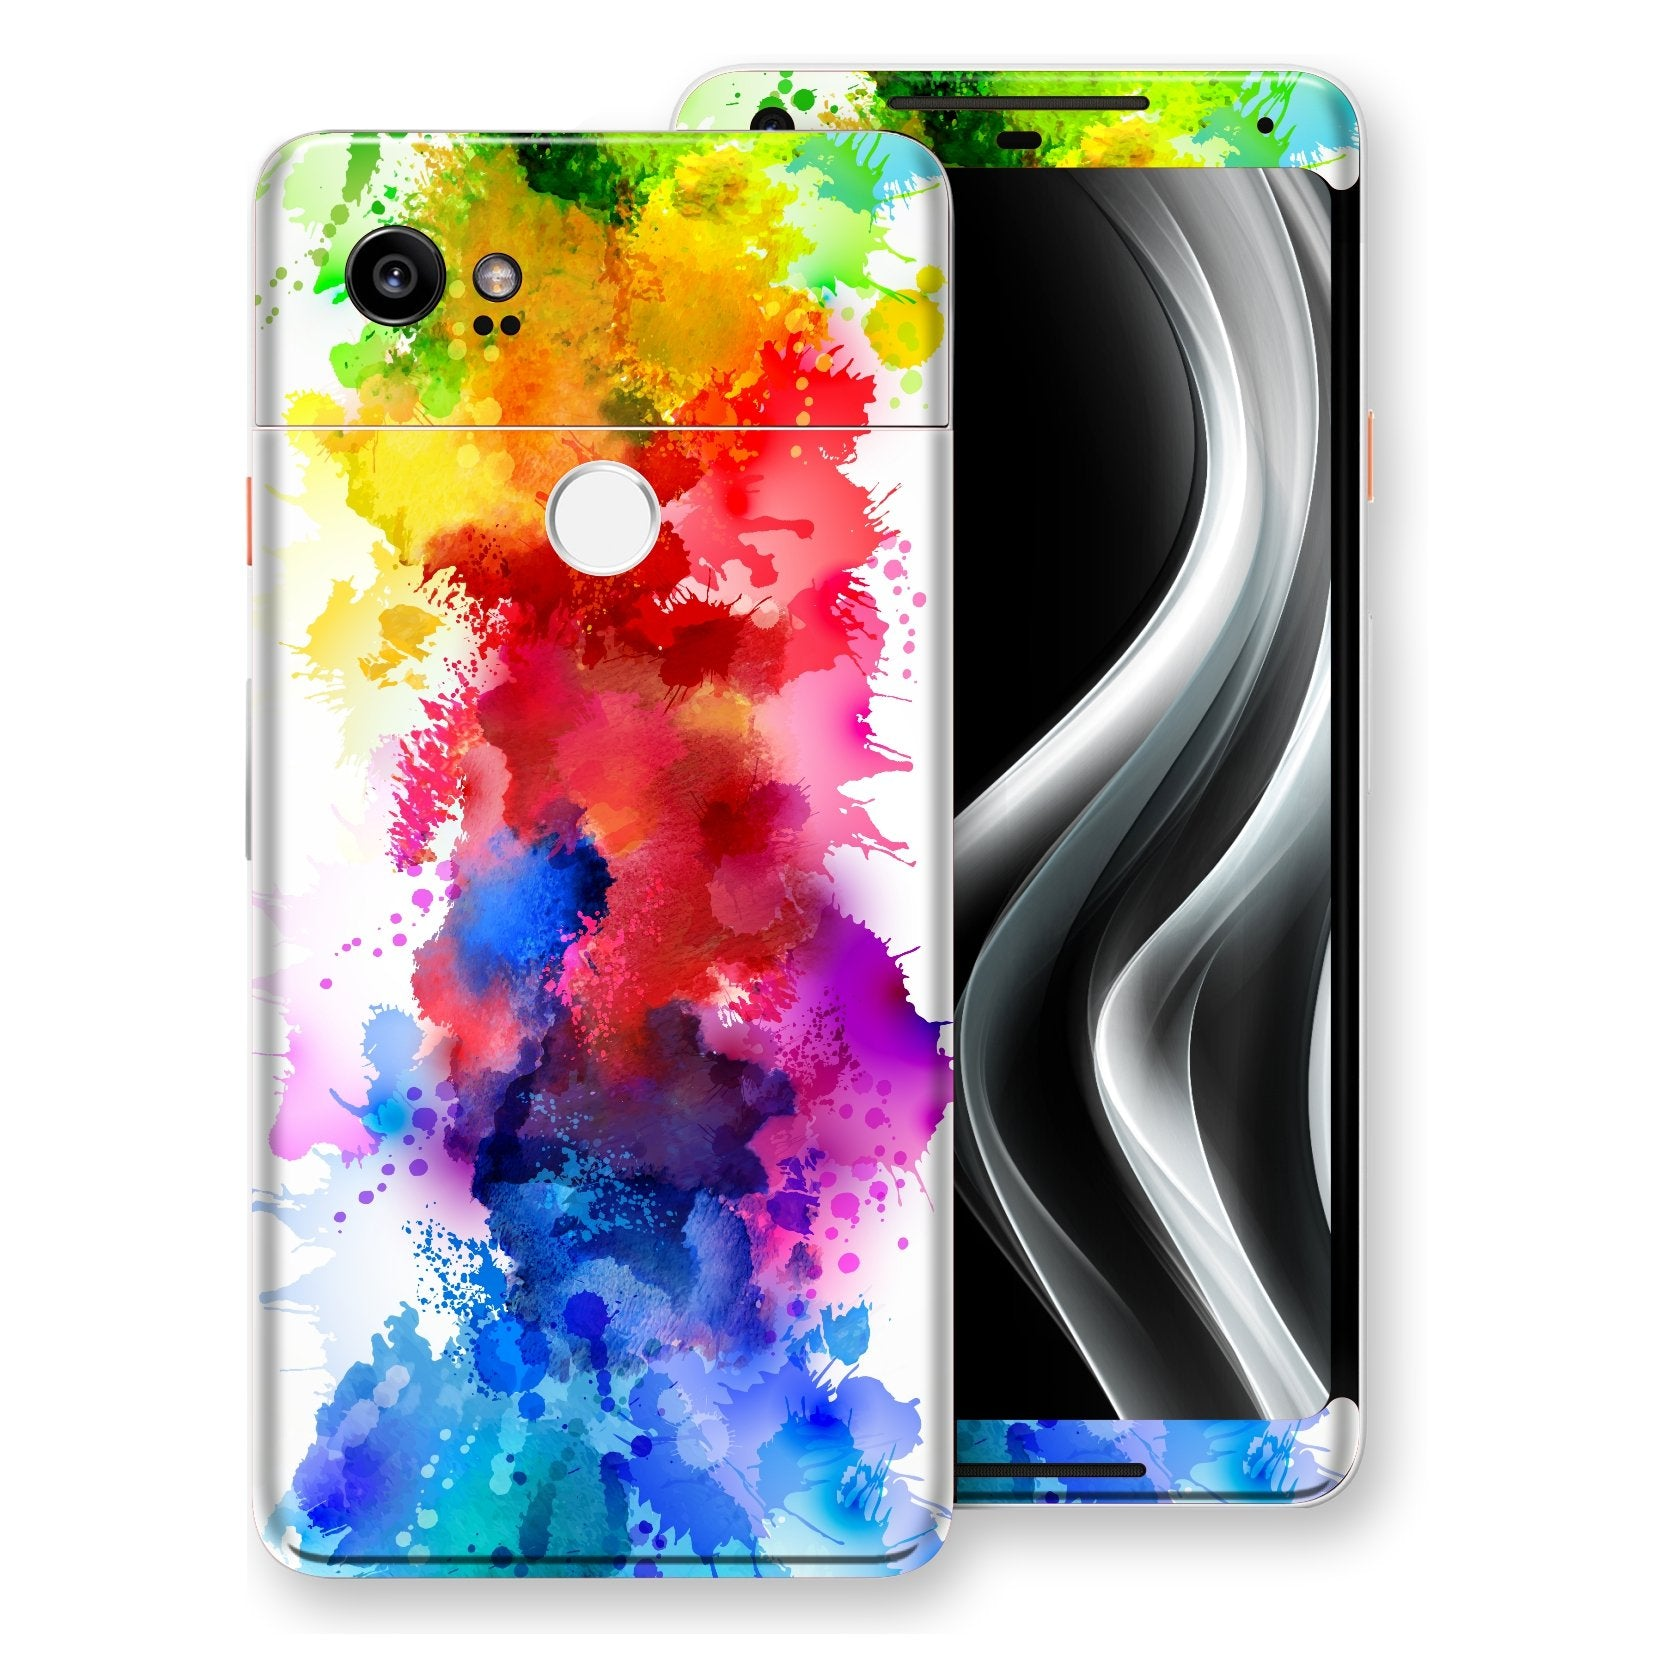 Google Pixel 2 XL Signature Watercolour Skin Wrap Decal Protector | EasySkinz